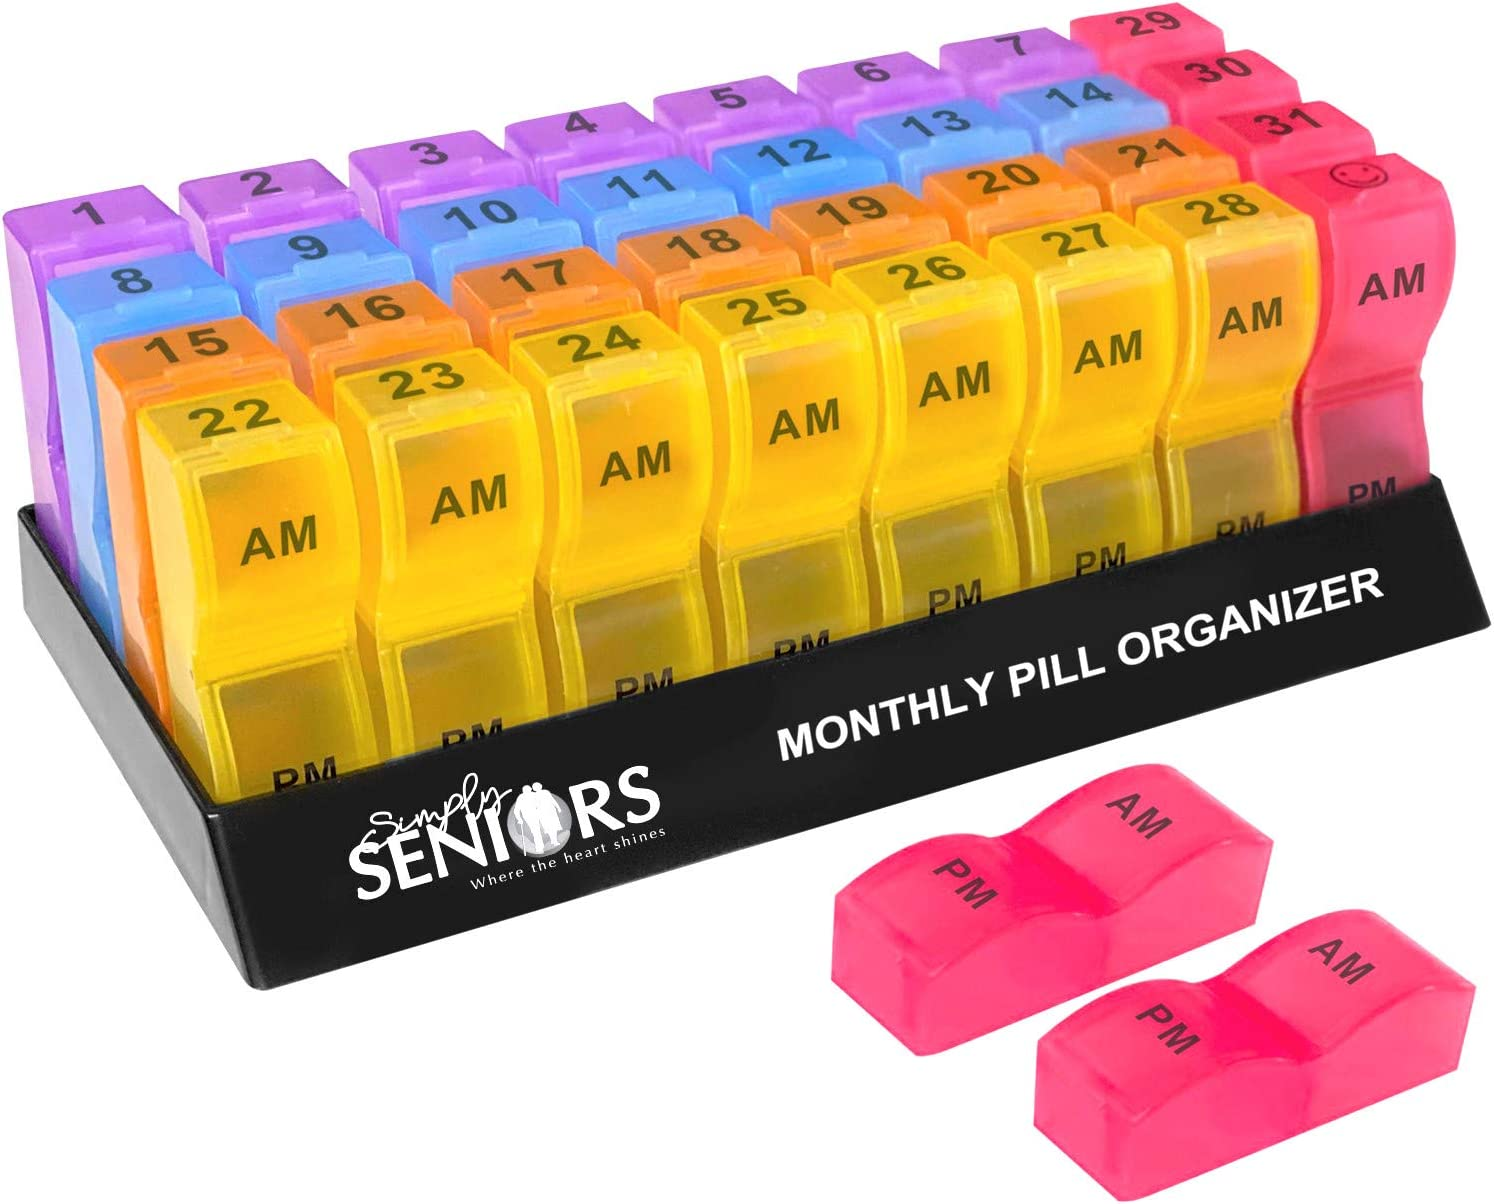 Monthly Pill Organizer – Monthly Medicine Organizer with Color Coded Weekly System – 30 Day Pill Box Organizer 2 Times a Day AM PM and Don't Forget to Take Your Prescribed Doses +1 Extra Slot+2 Spare